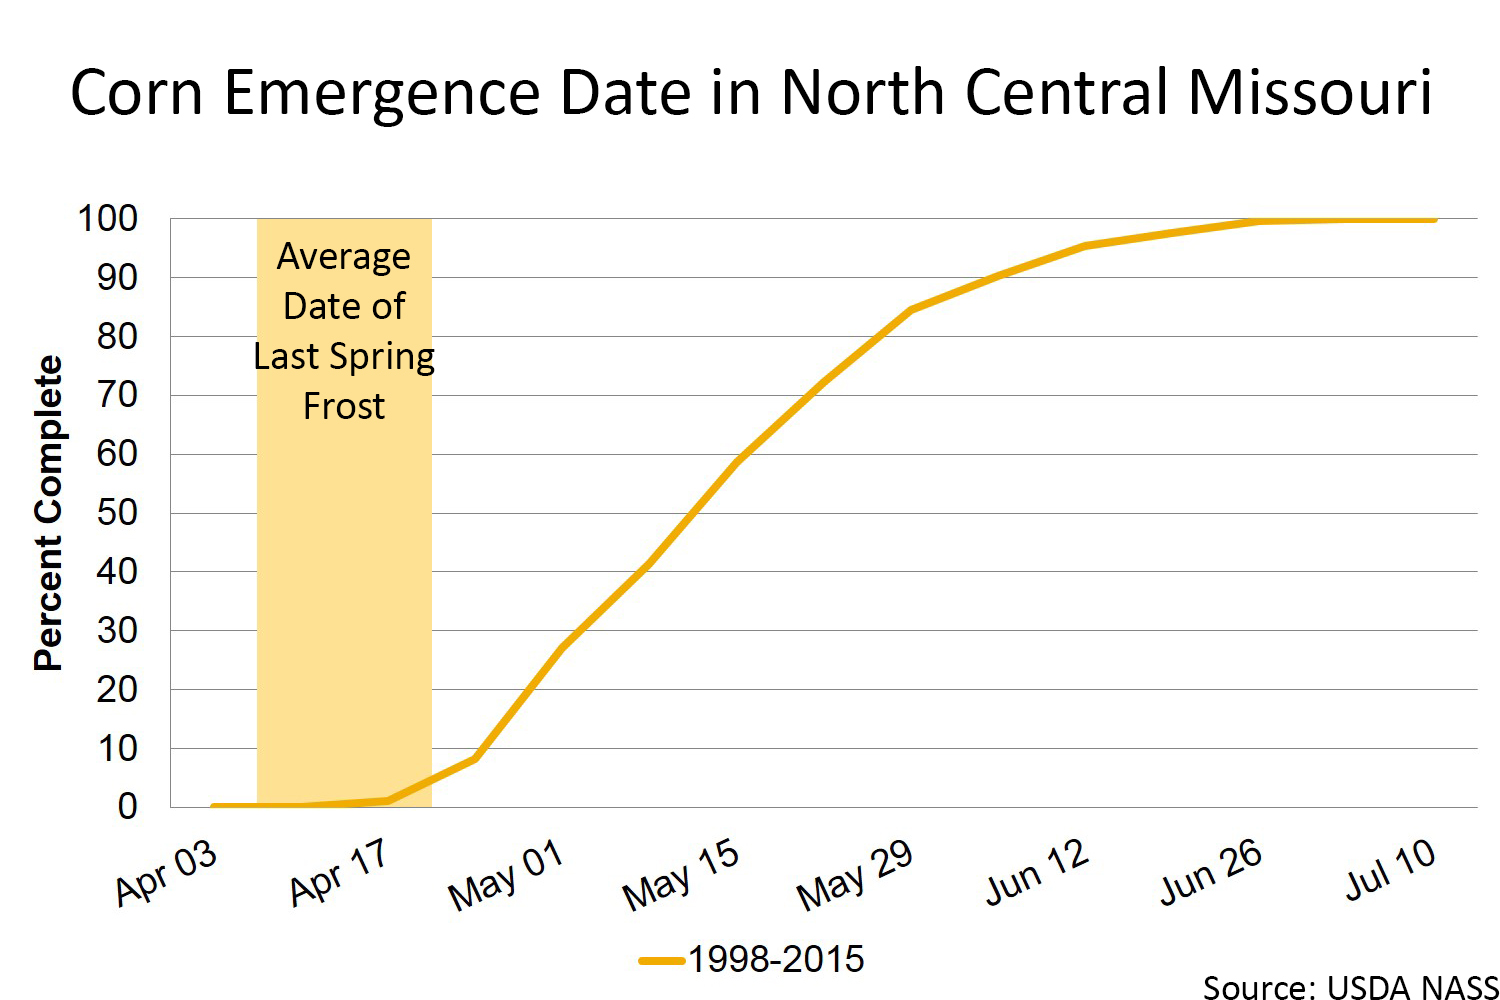 Corn emergence date in north central Missouri chart